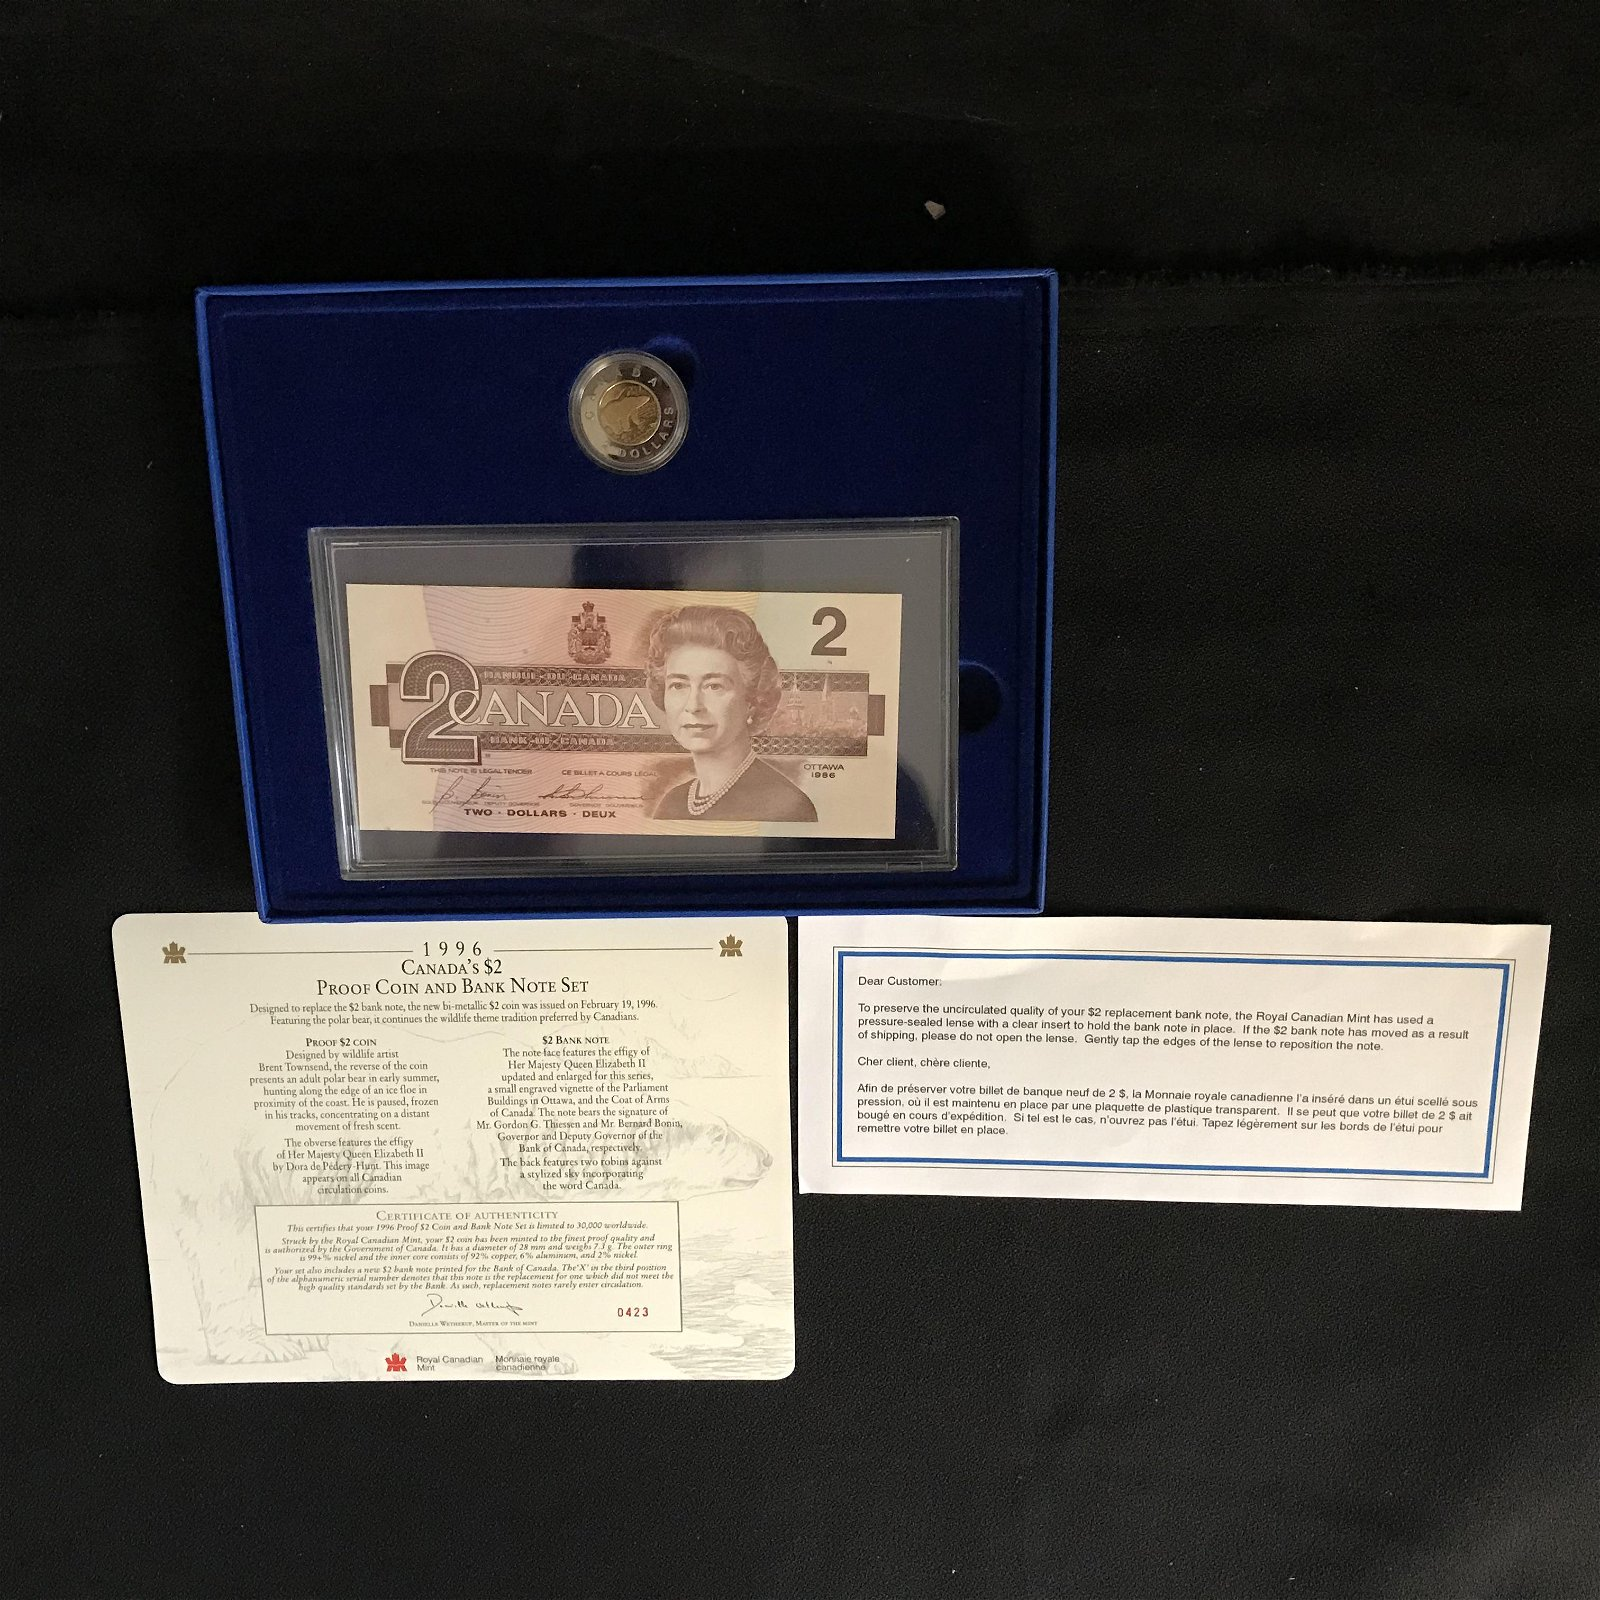 1996 CANADA'S $2 PROOF COIN & BANK NOTE SET (ROYAL